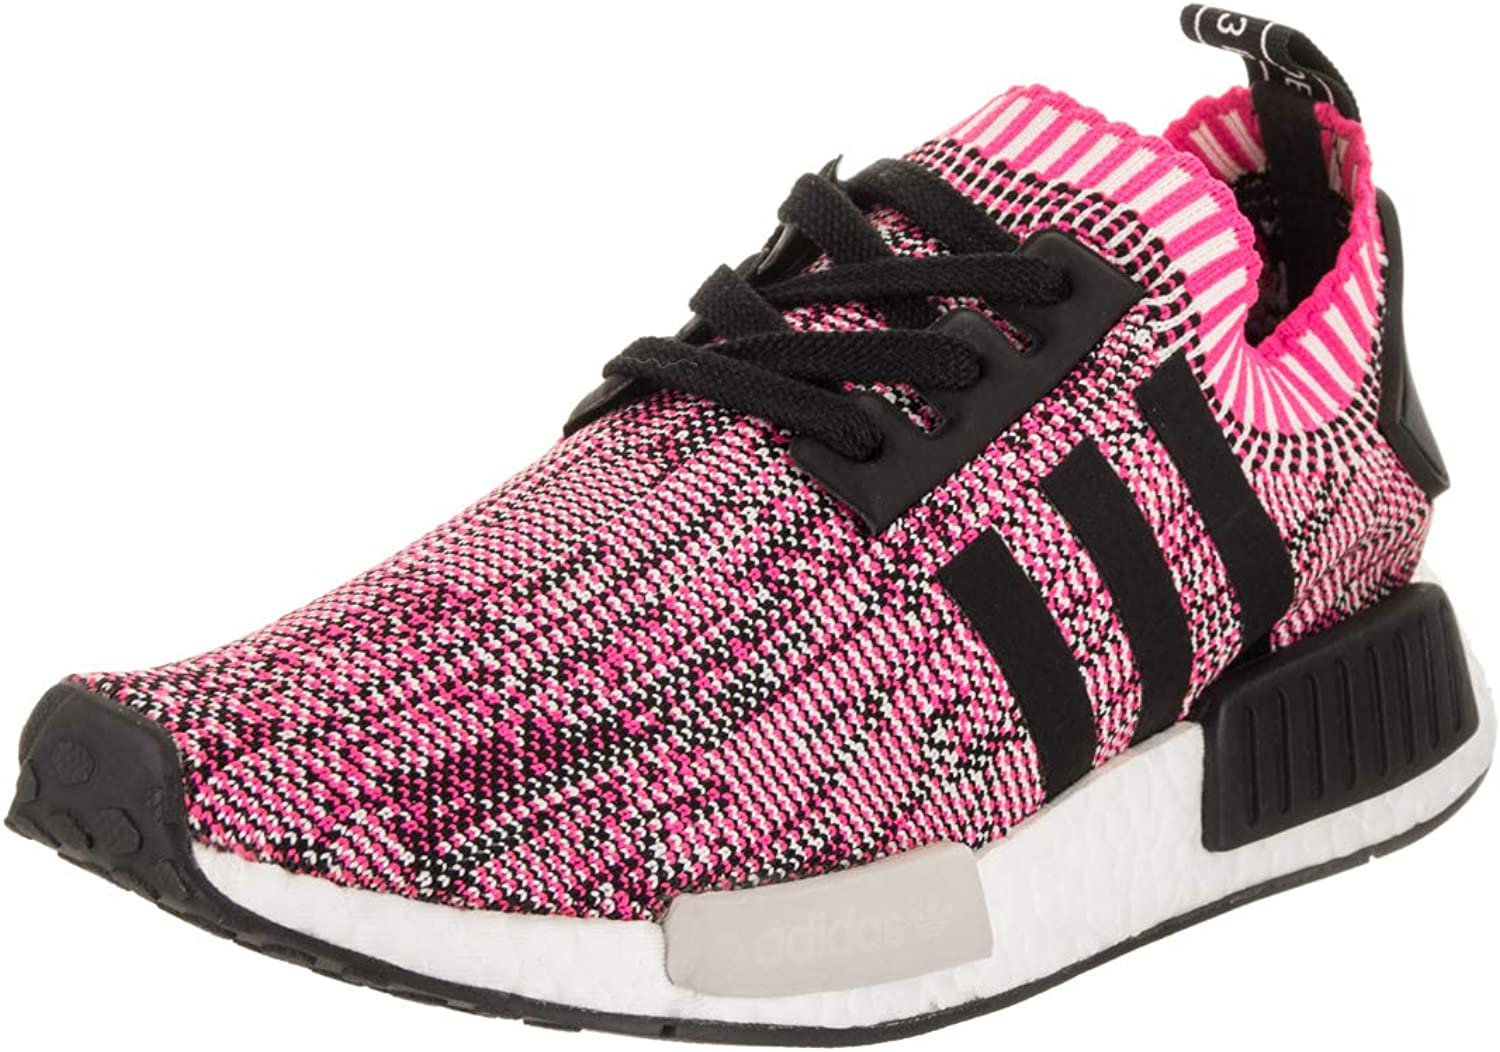 NMD R1 Primeknit Womens in Shock Pink Core Black by Adidas